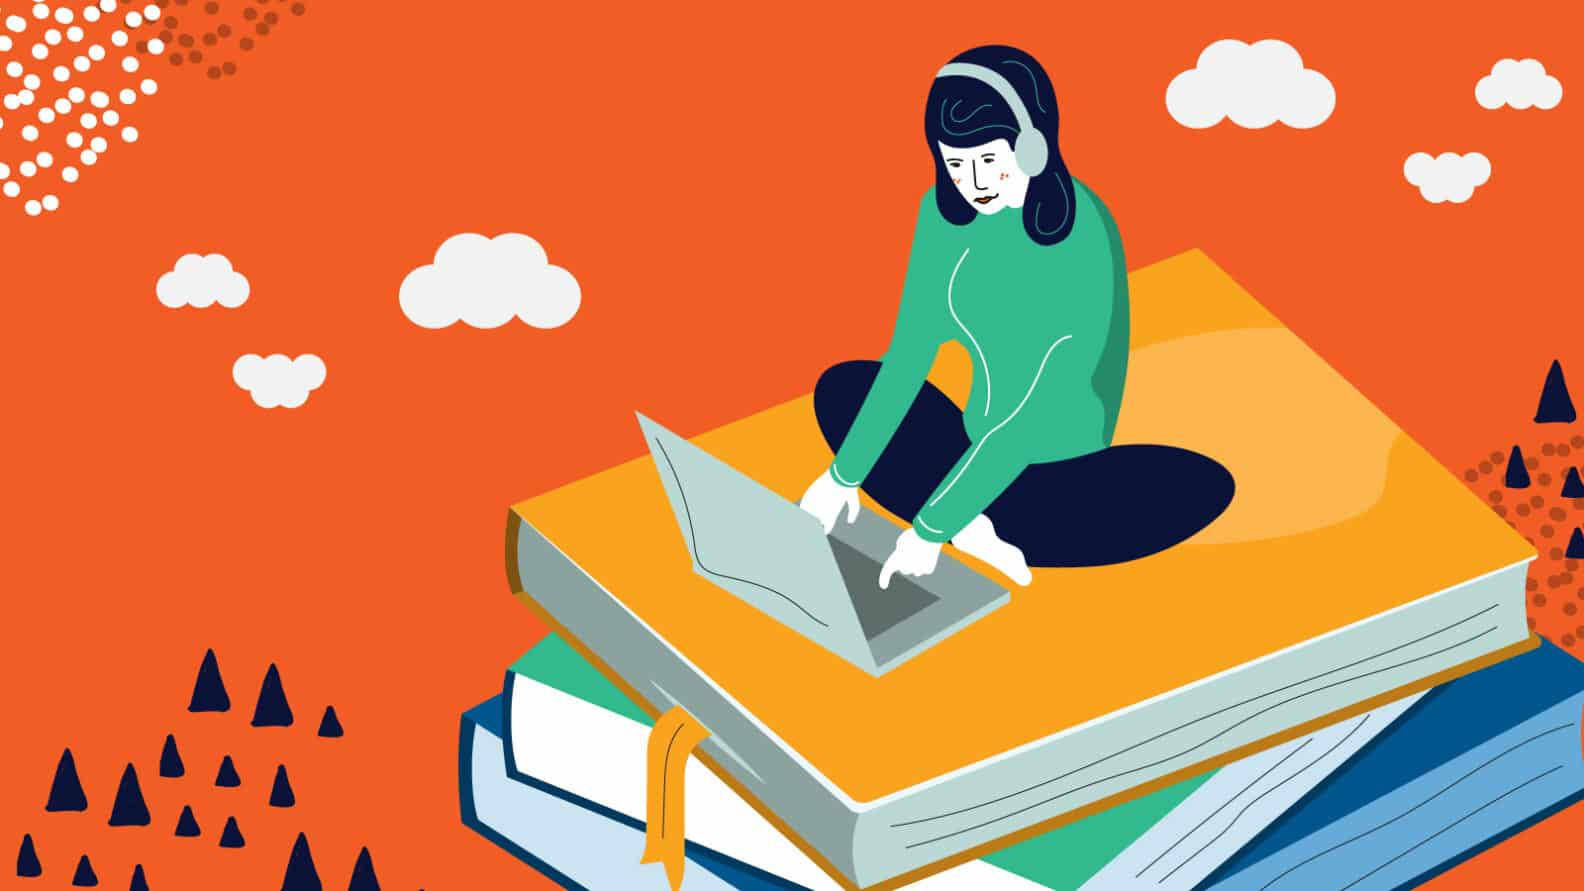 Illustration: Woman atop a stack of books on her laptop practicing the 50/10 rule of studying